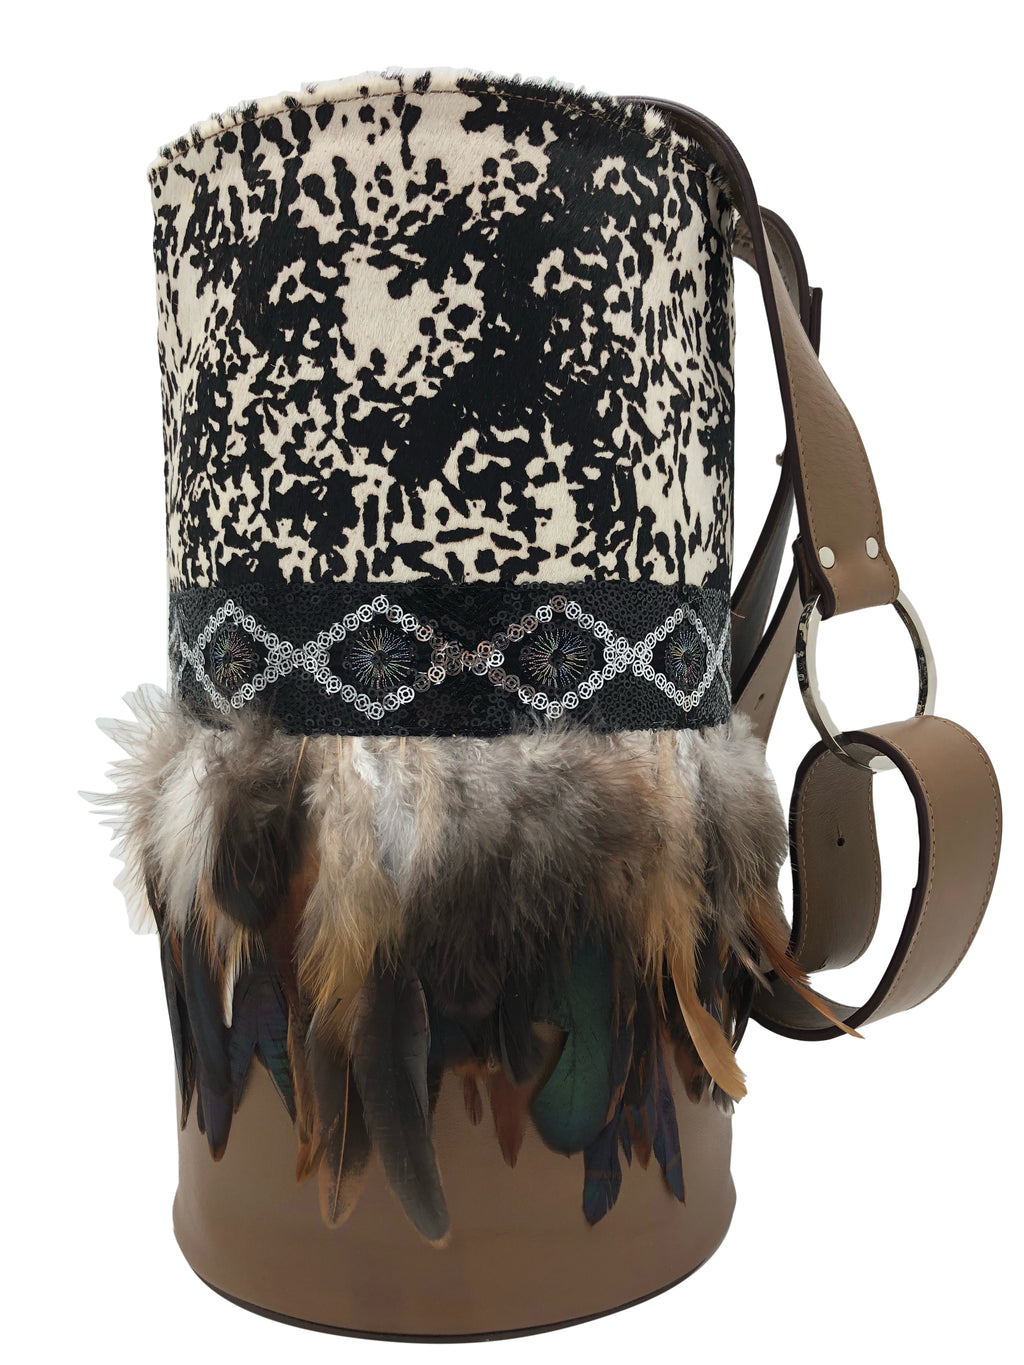 Cow pattern haircalf & brown leather bag with sequins and feathers.